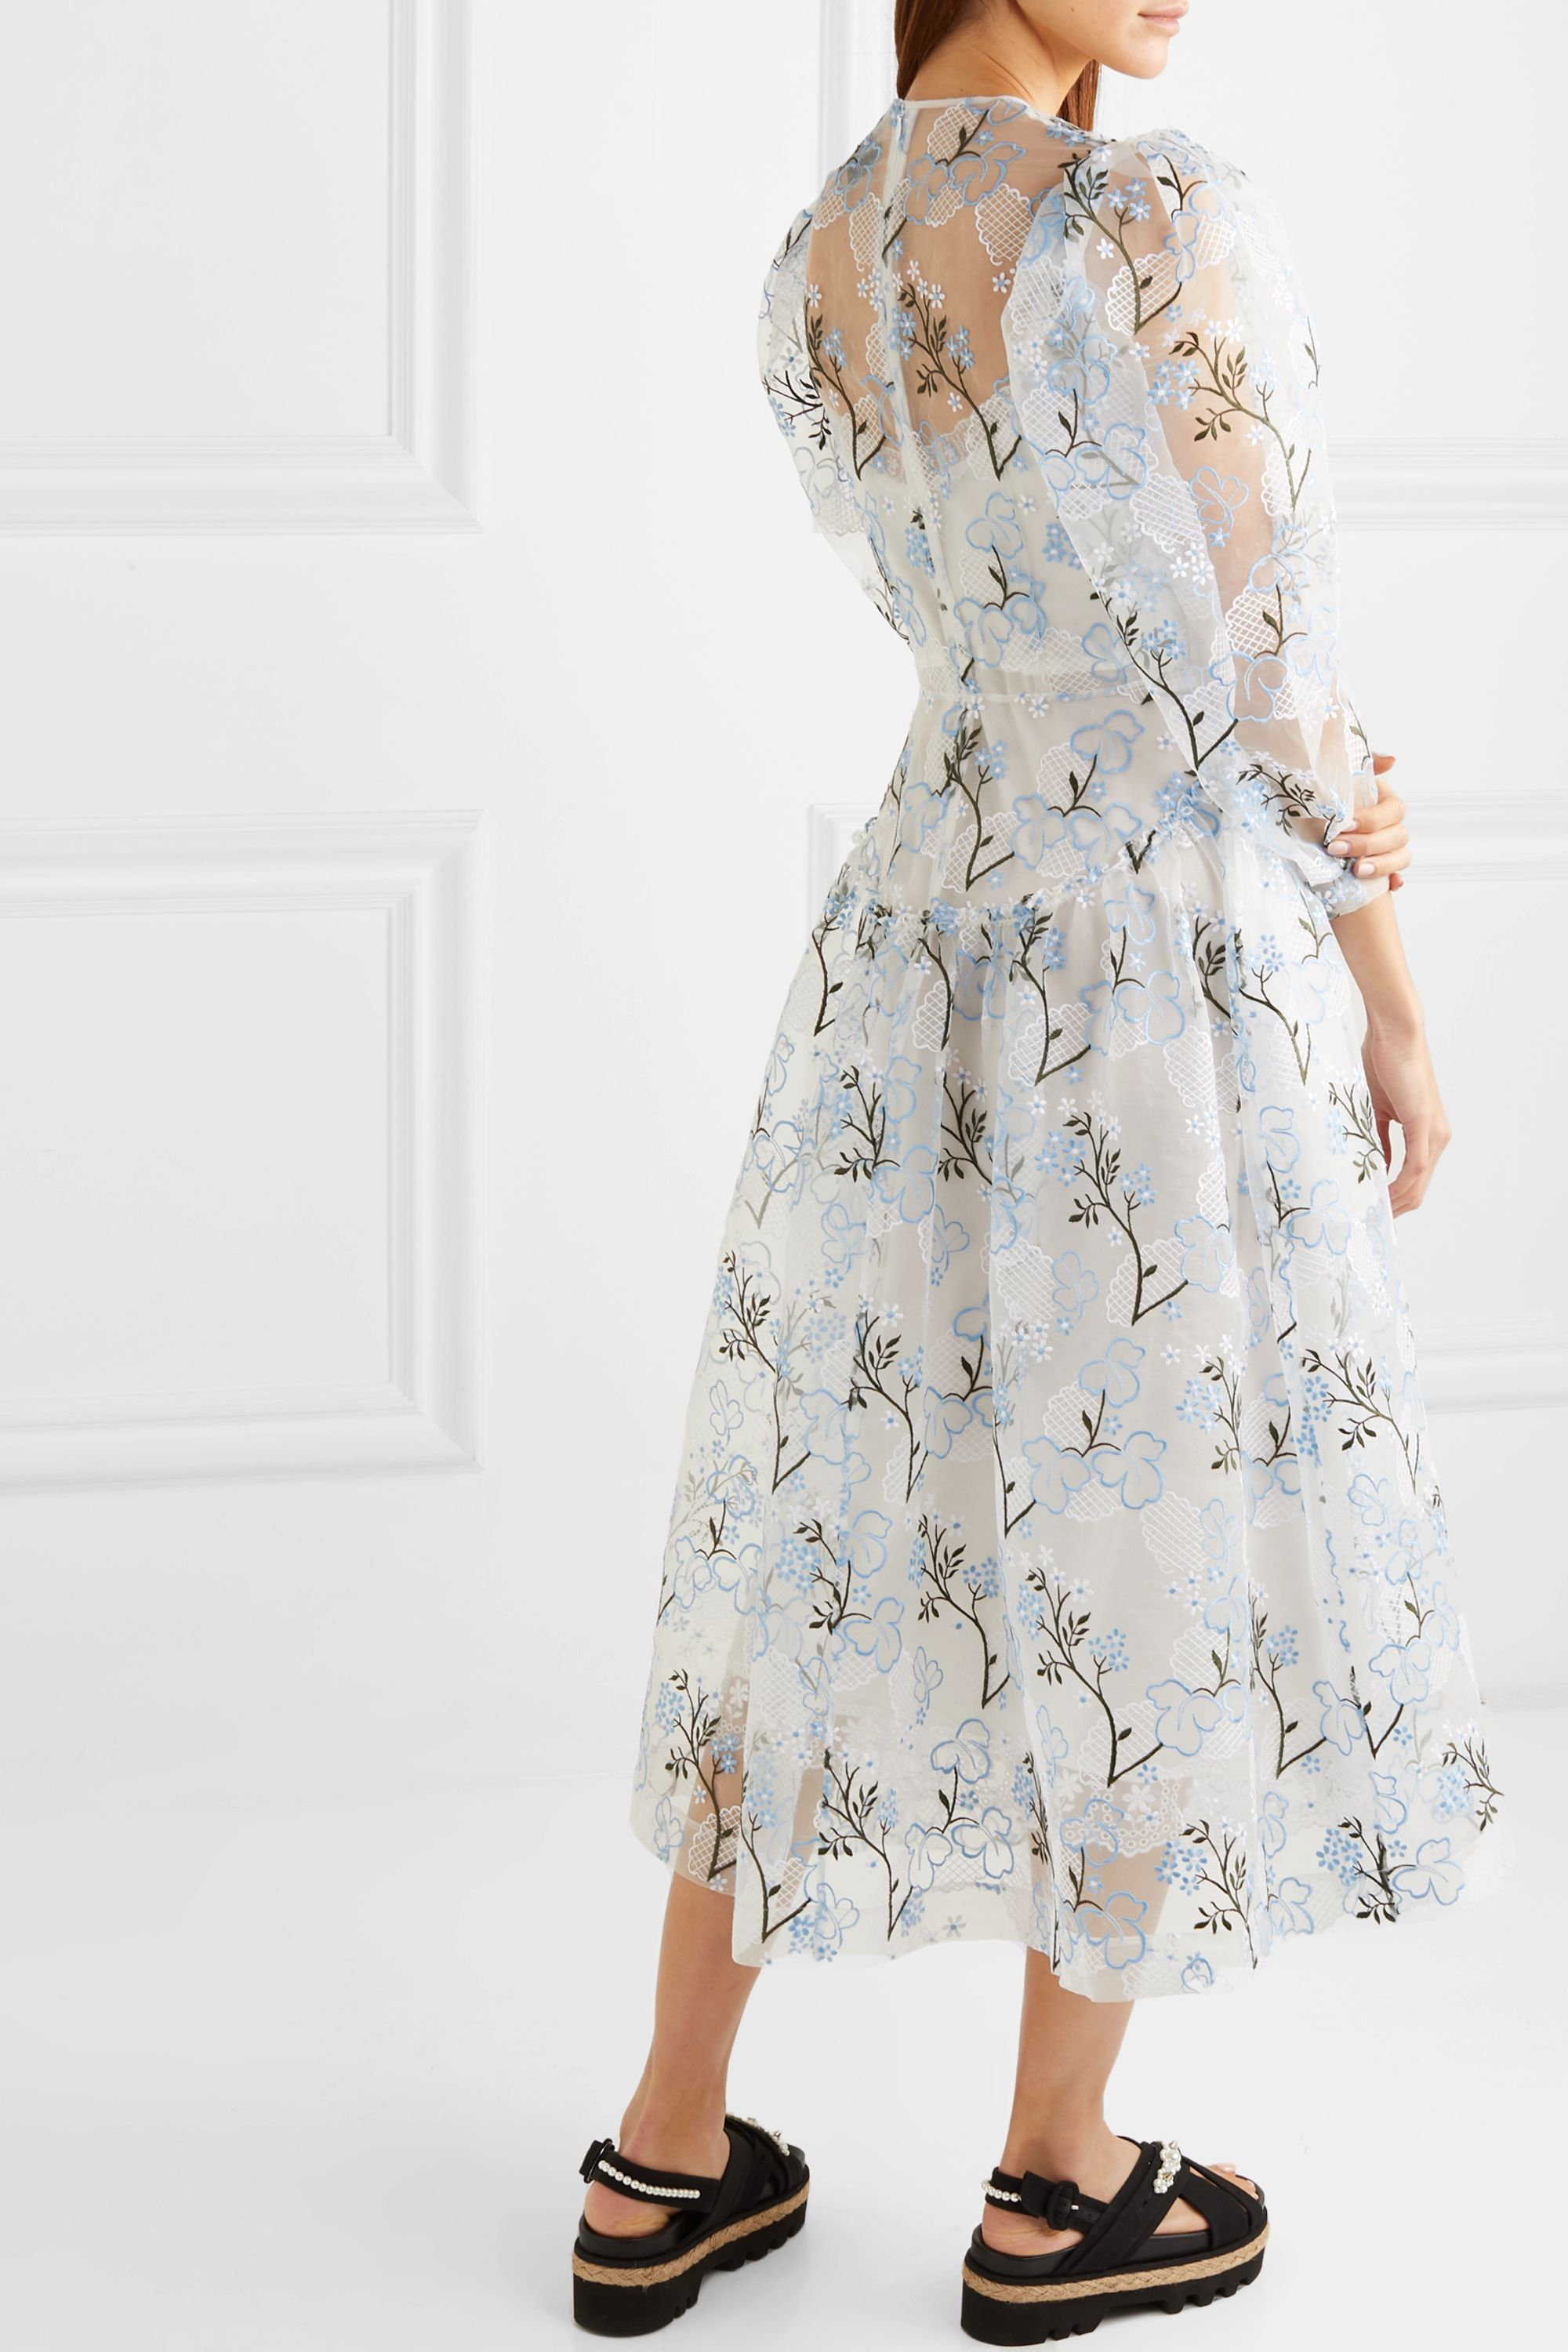 Simone Rocha Ruffled embroidered organza midi dress